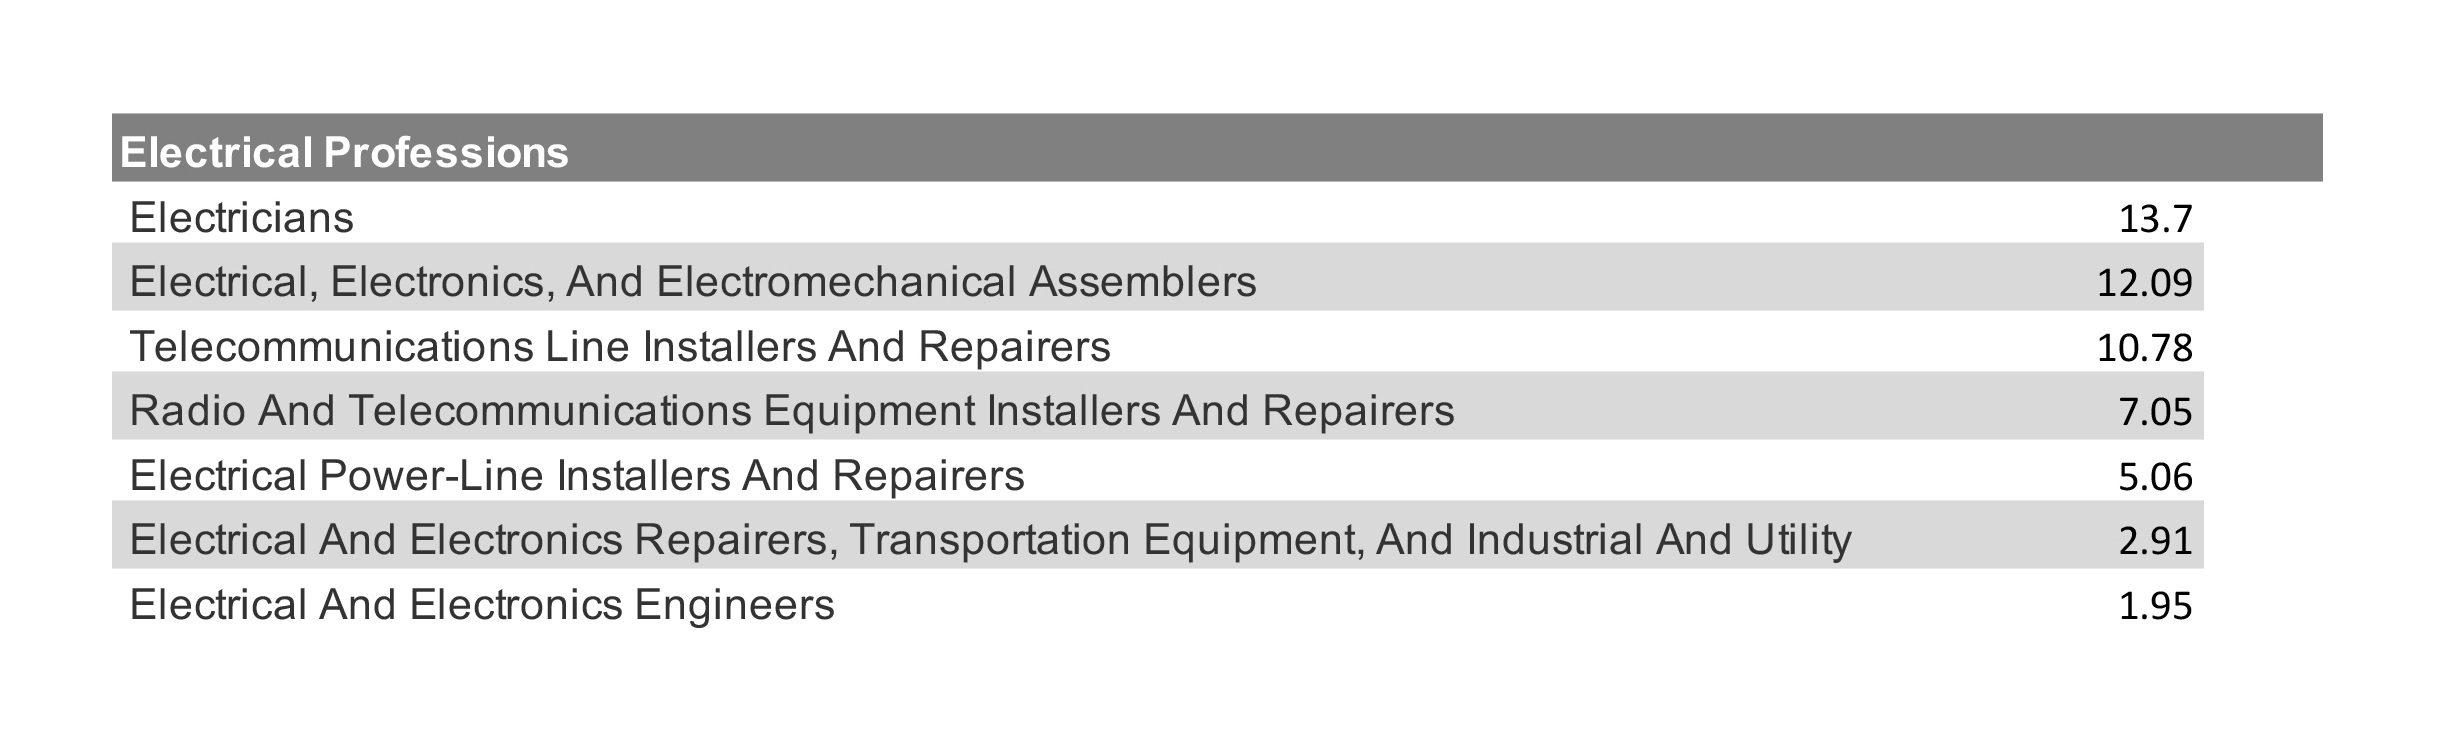 Percentage of Uninsured Workers - Electrical Professions